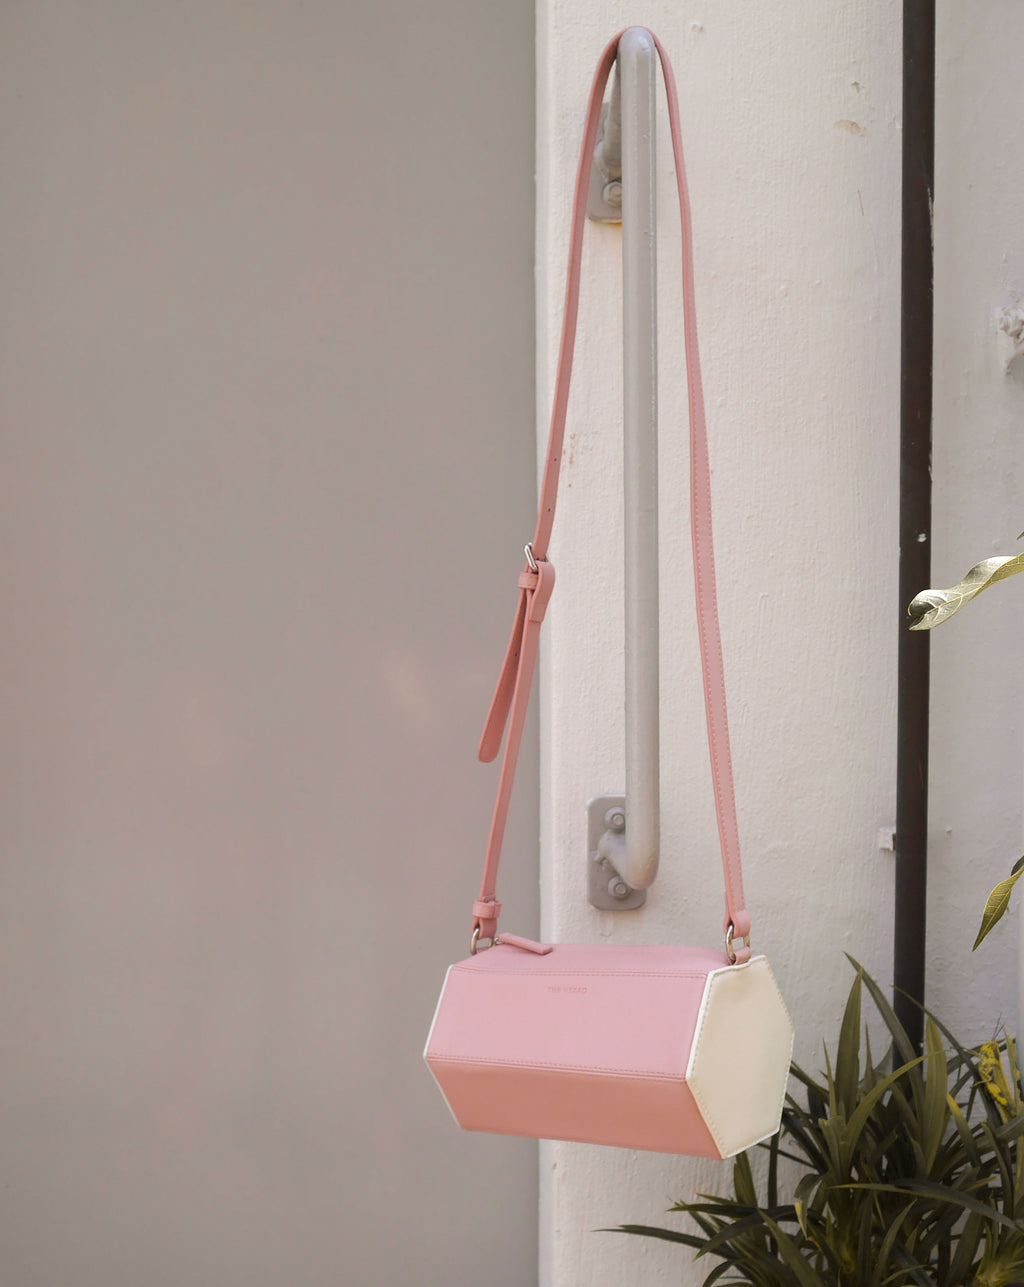 Small crossbody bag featuring a unique hexagon prism shape - fun and quirky styled bag - pink and white colors - The Hexad